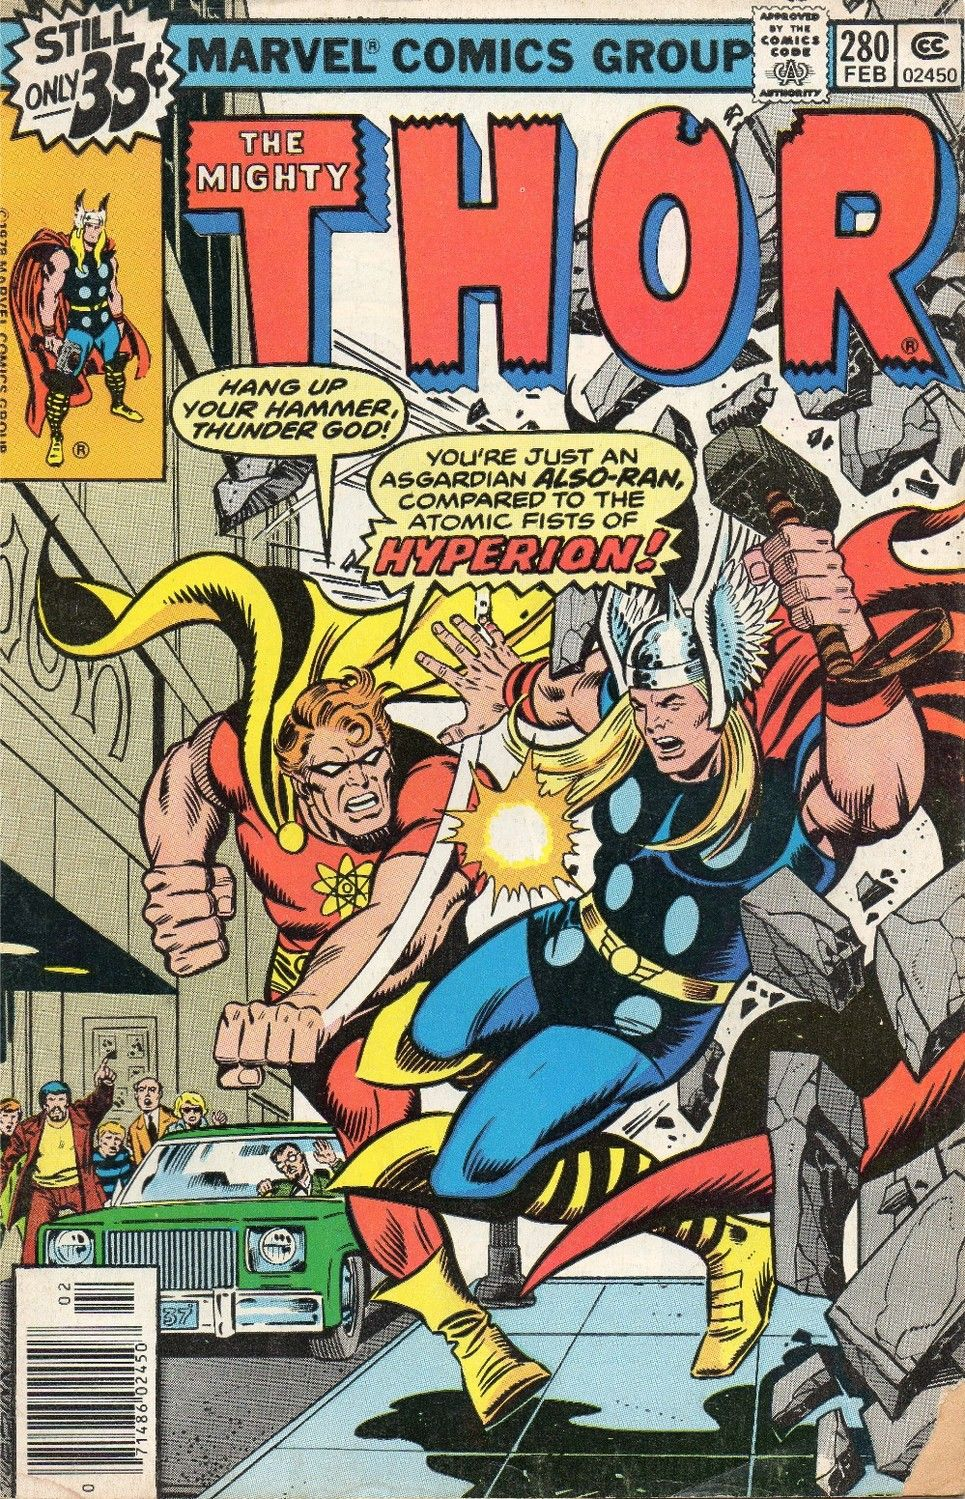 Vintage Comic Book Cover : Vintage thor comic book google search ideas